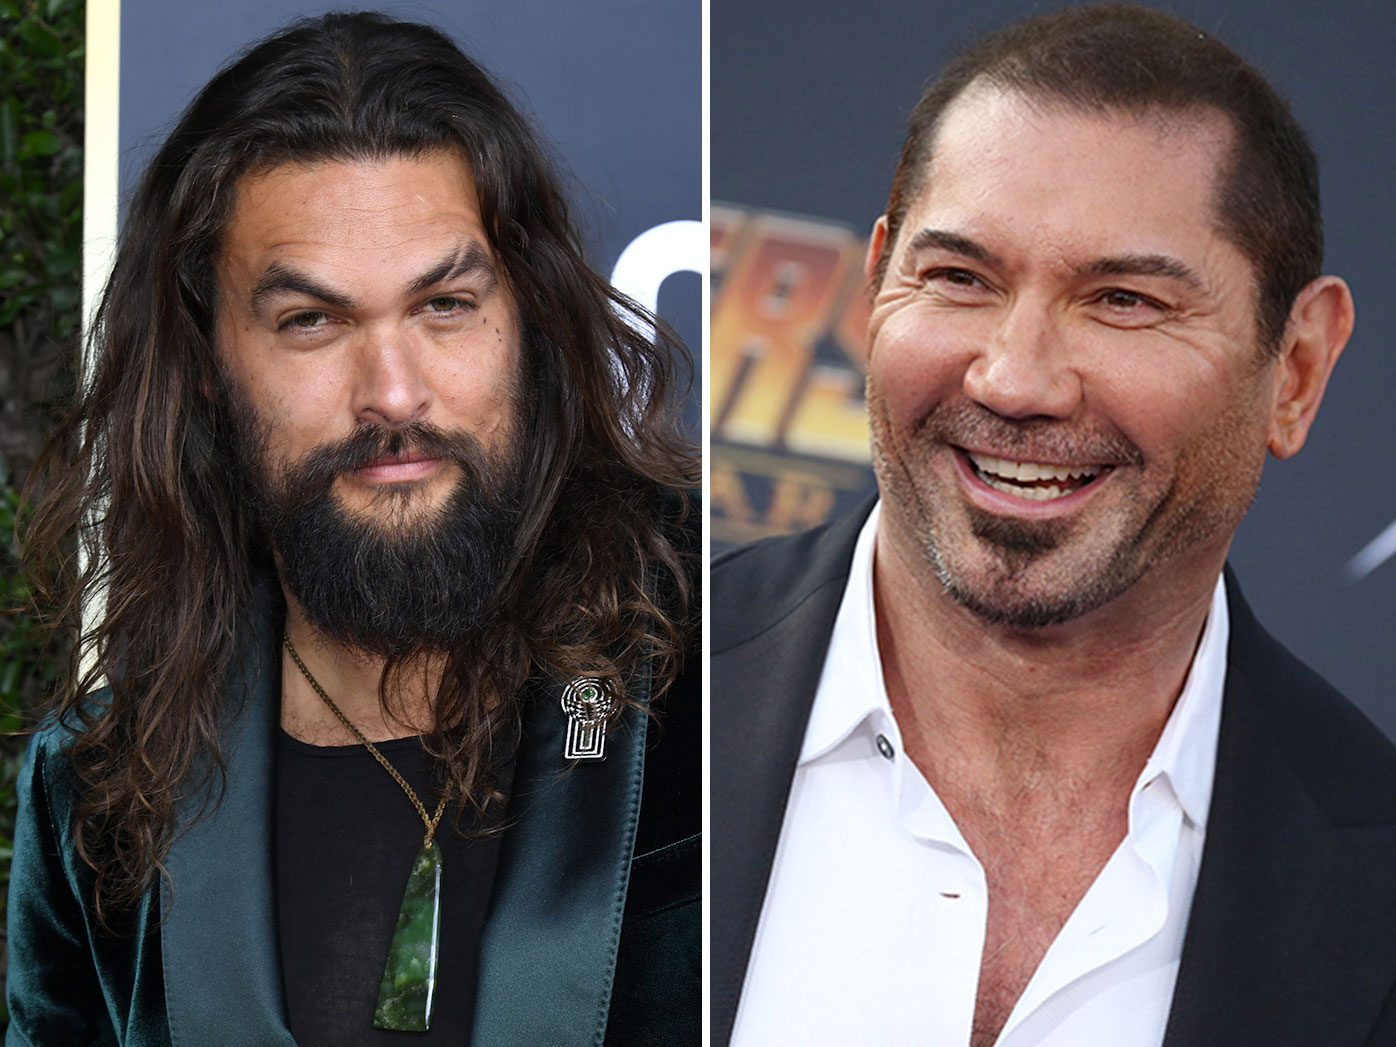 Actor reveals what it's like to work with Jason Momoa: 'Our energies are just extreme opposites'